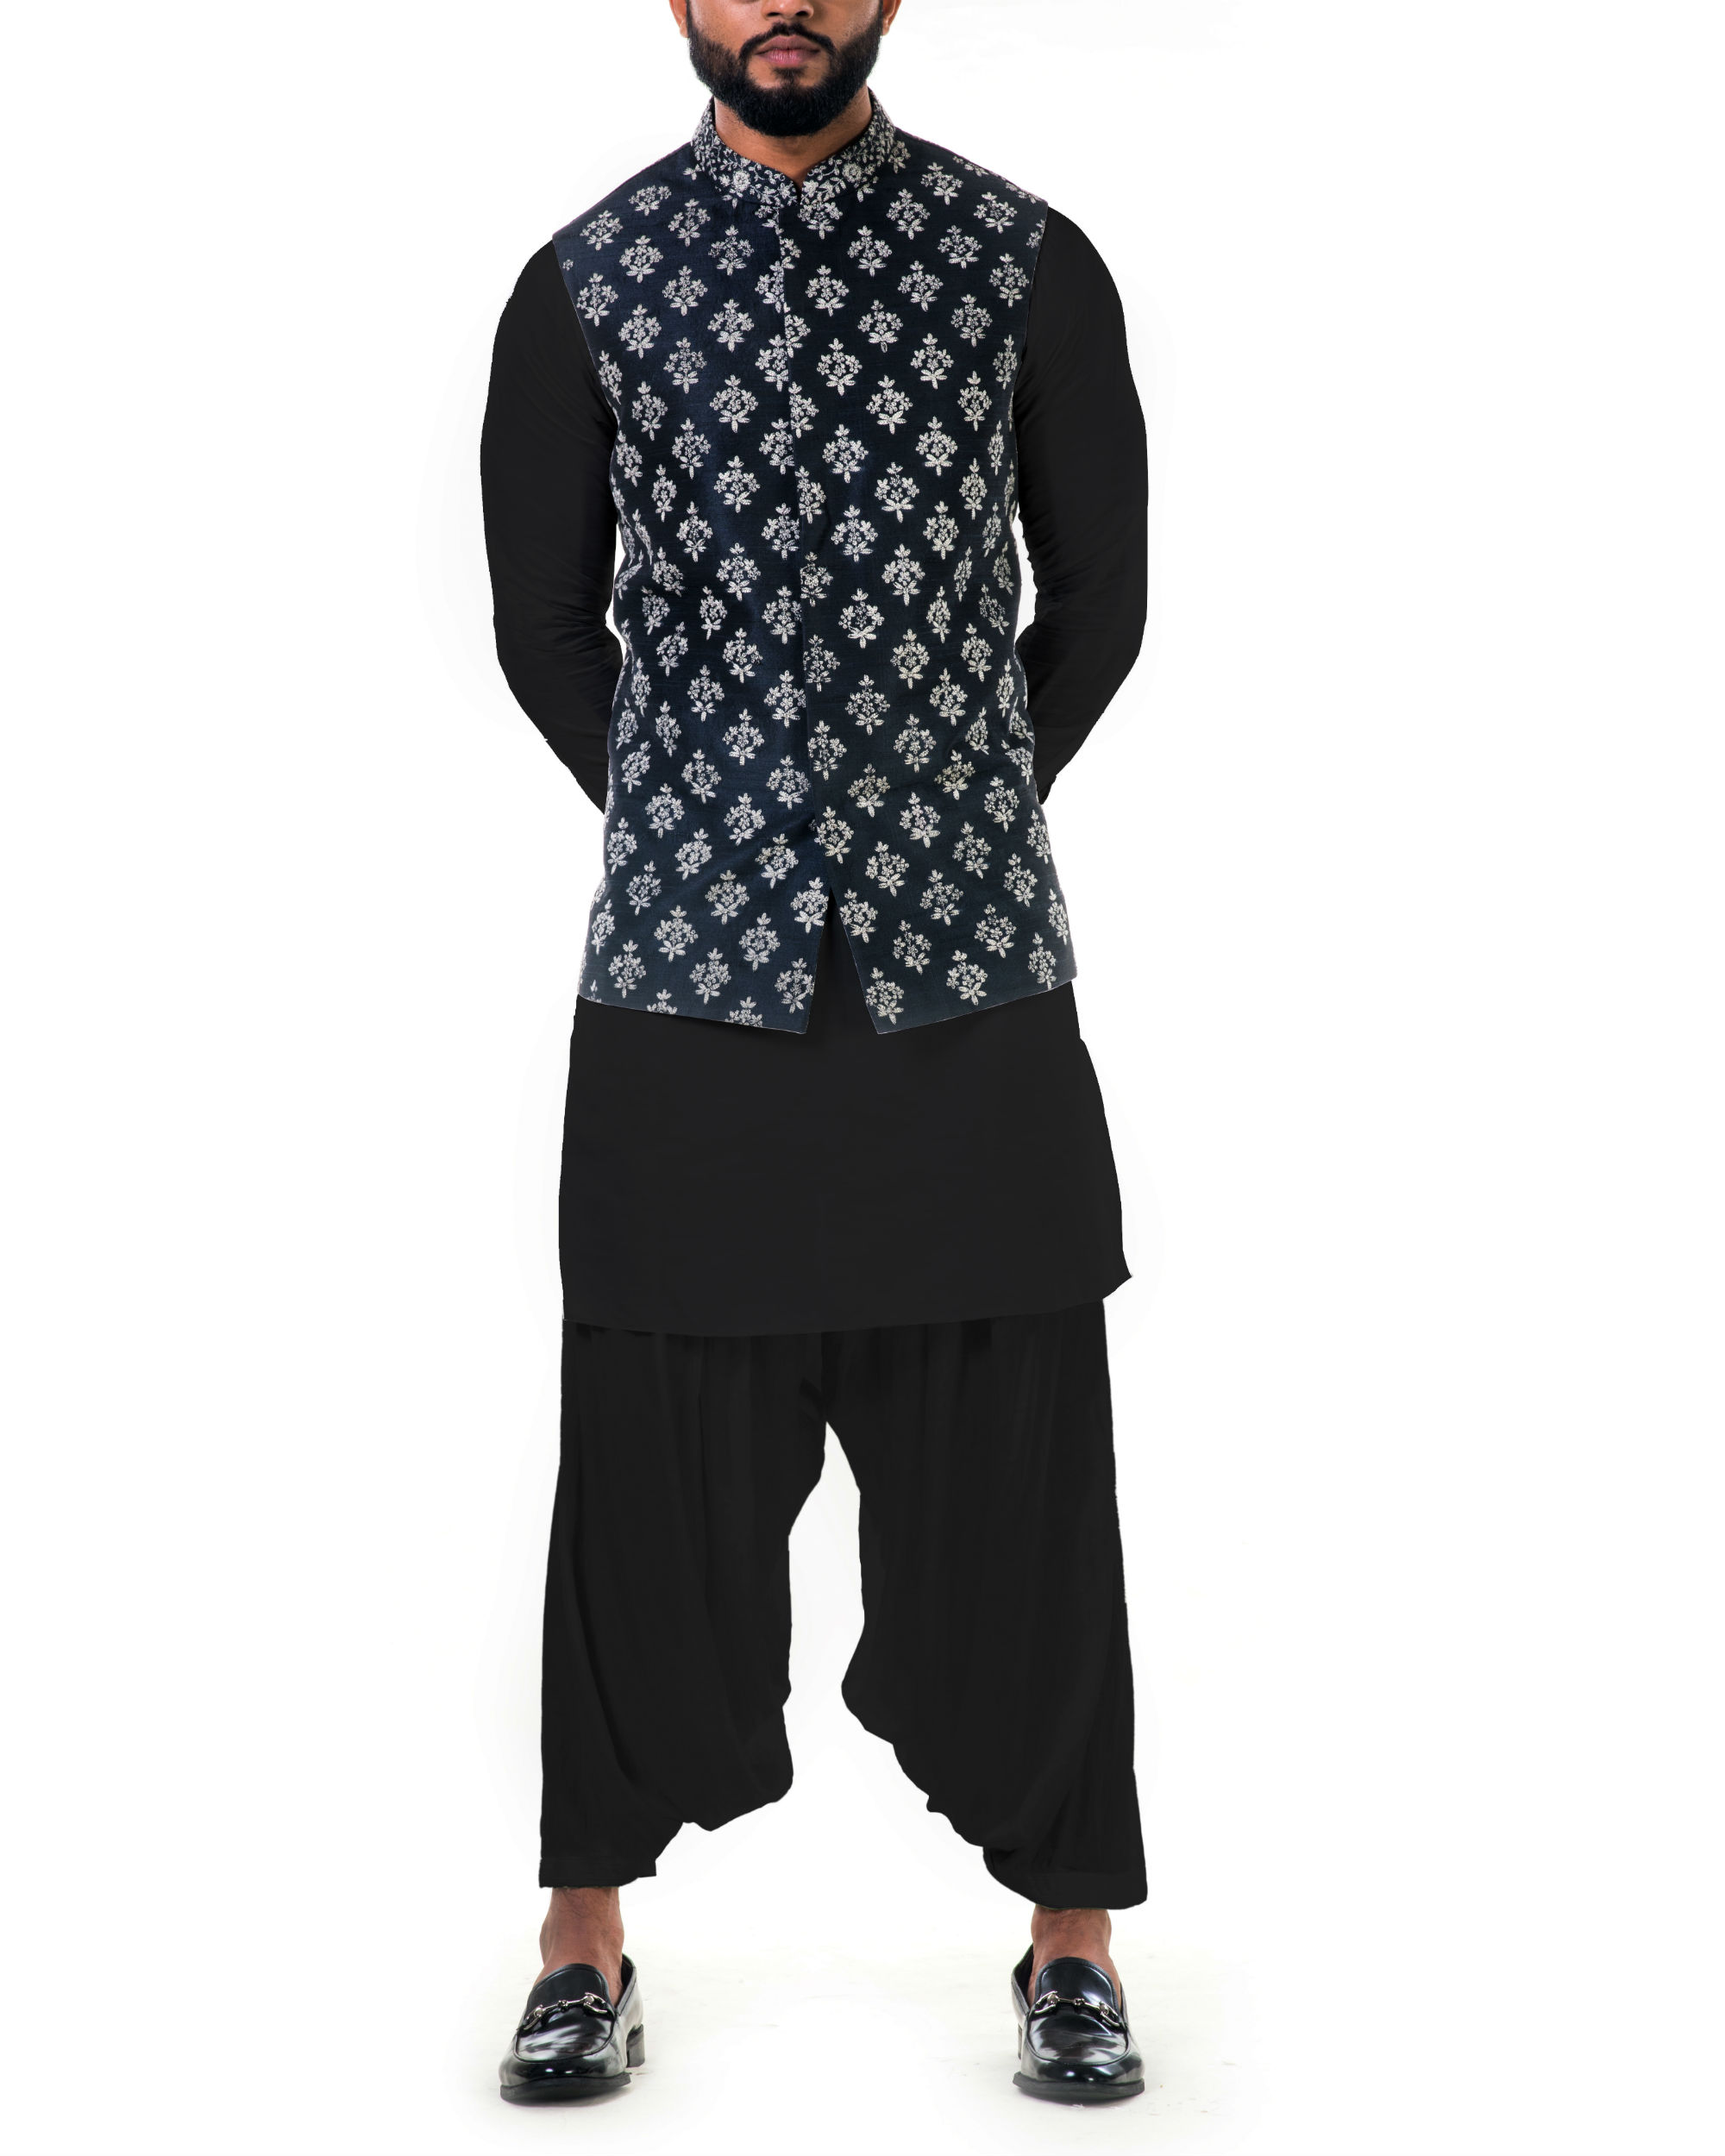 Black kurta set with floral embroidered jacket